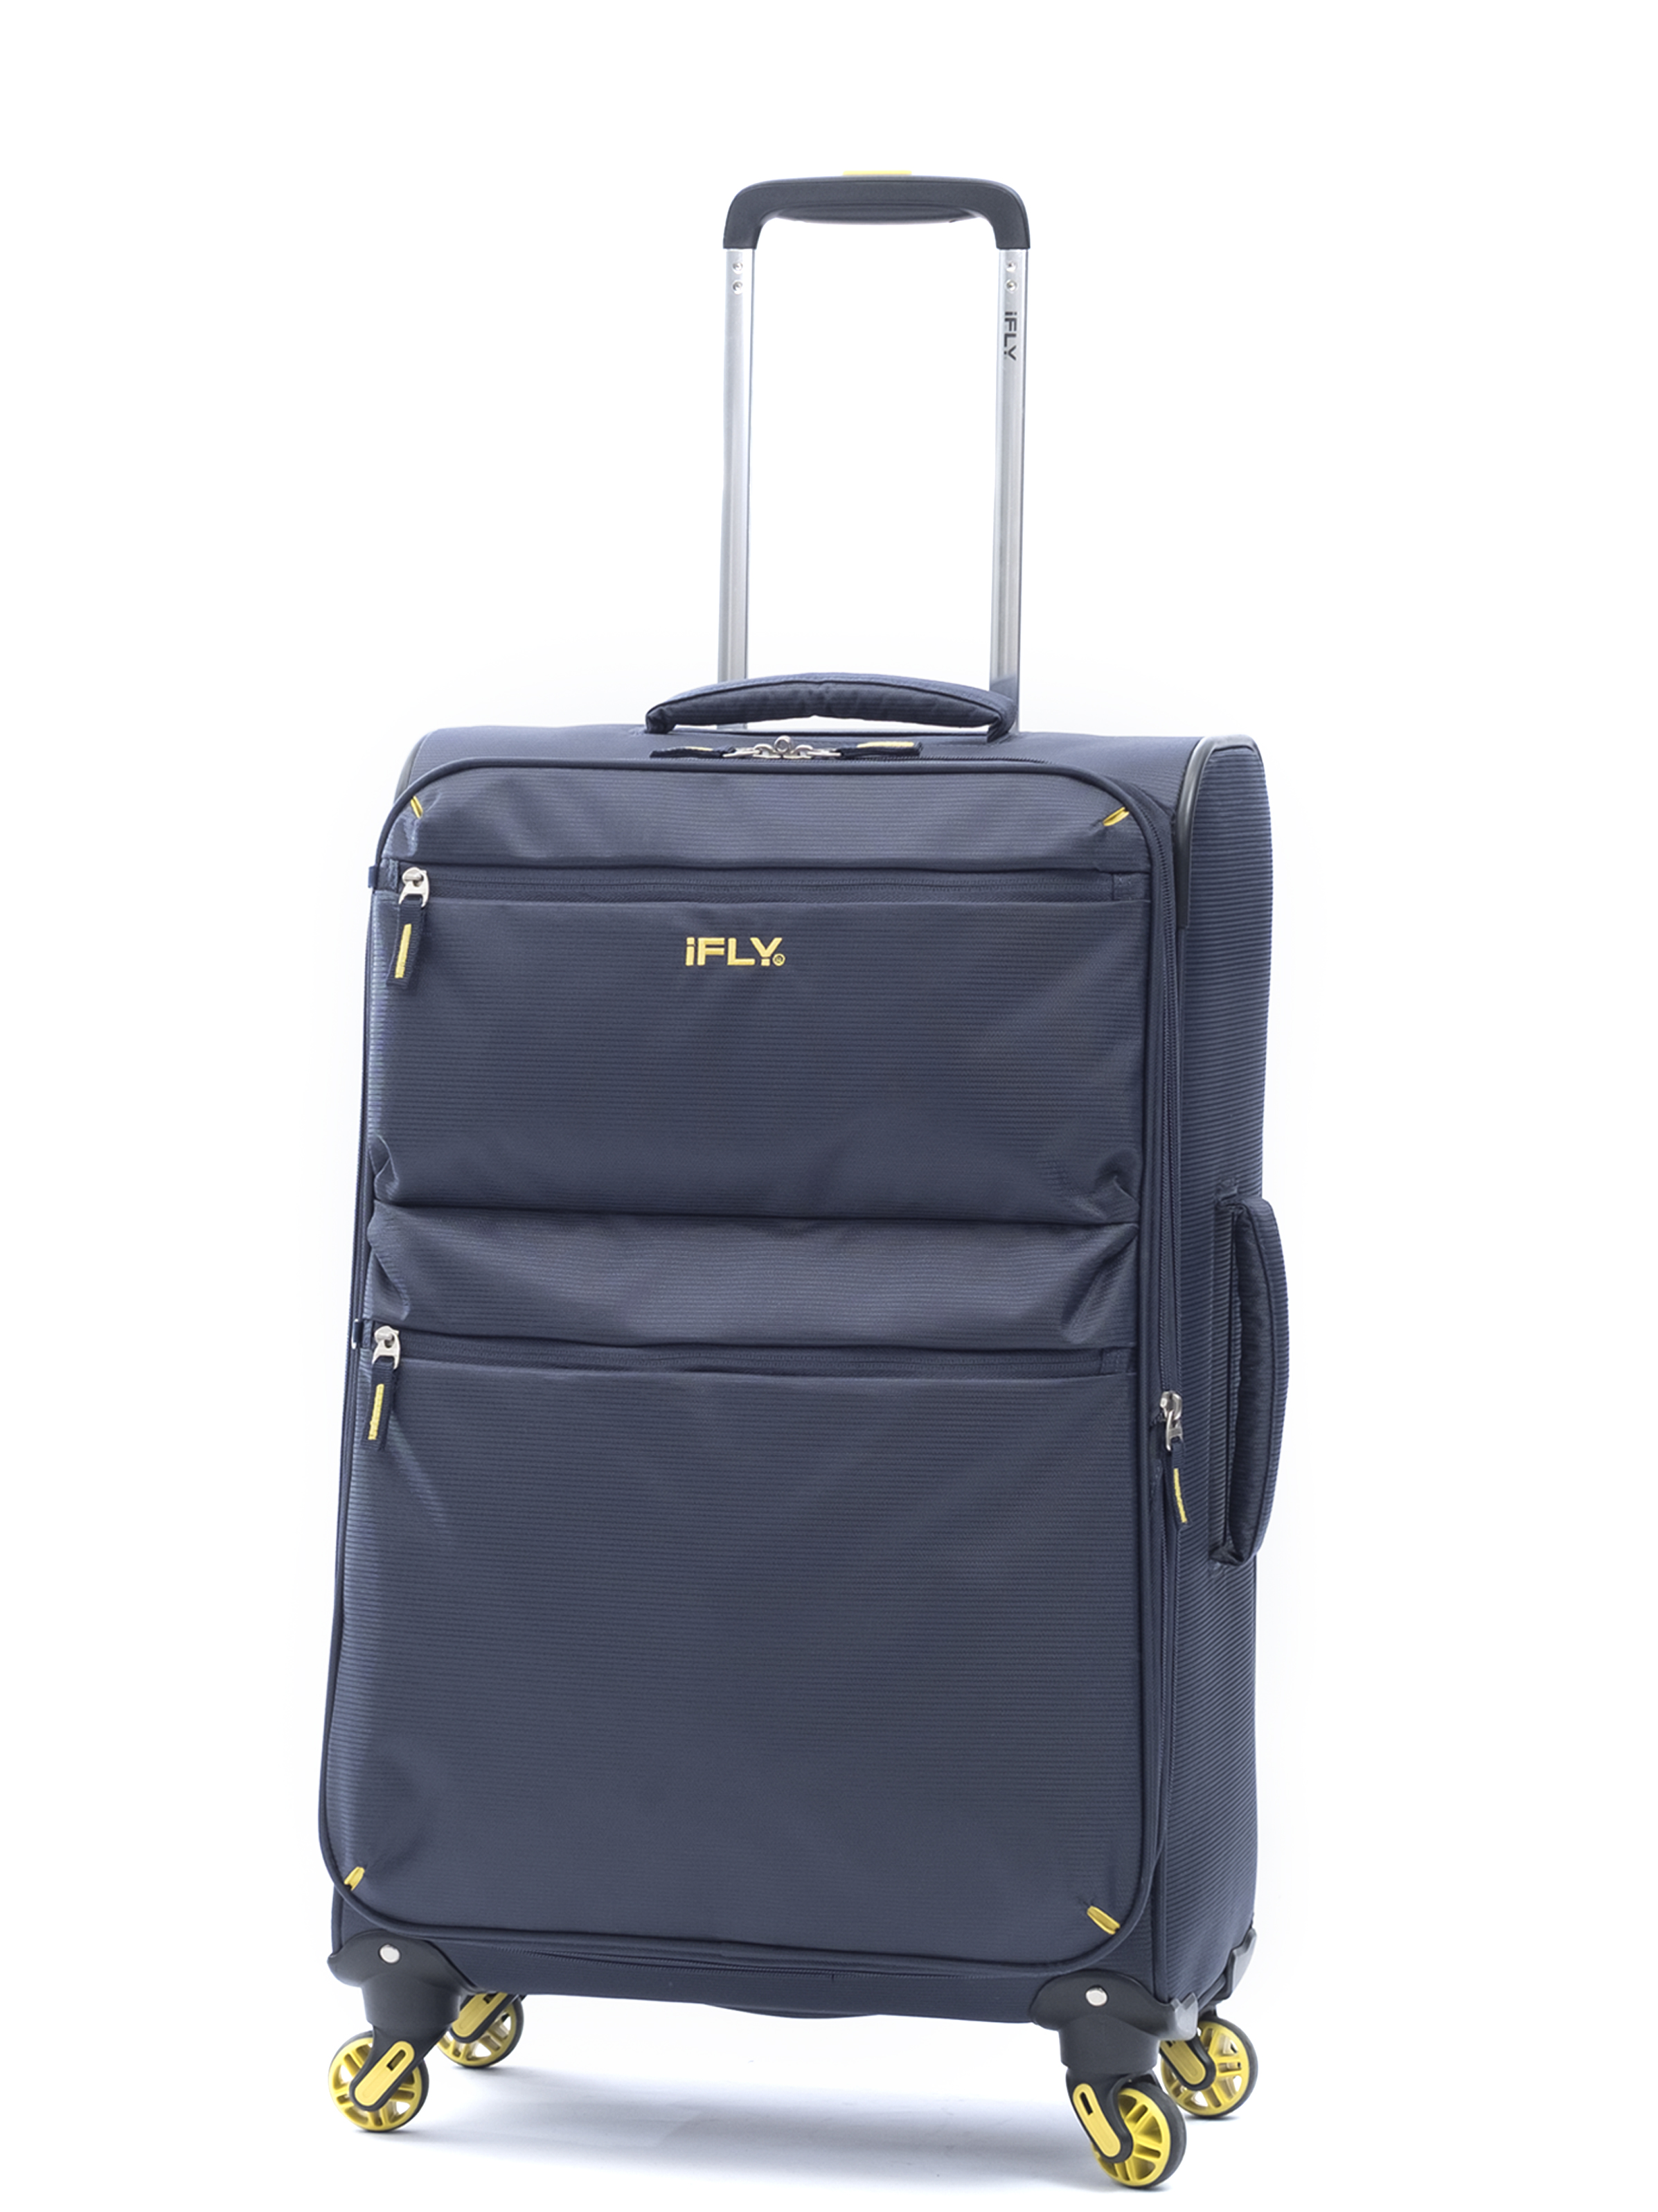 iFLY Soft Sided Luggage Ez Glider 24, Navy